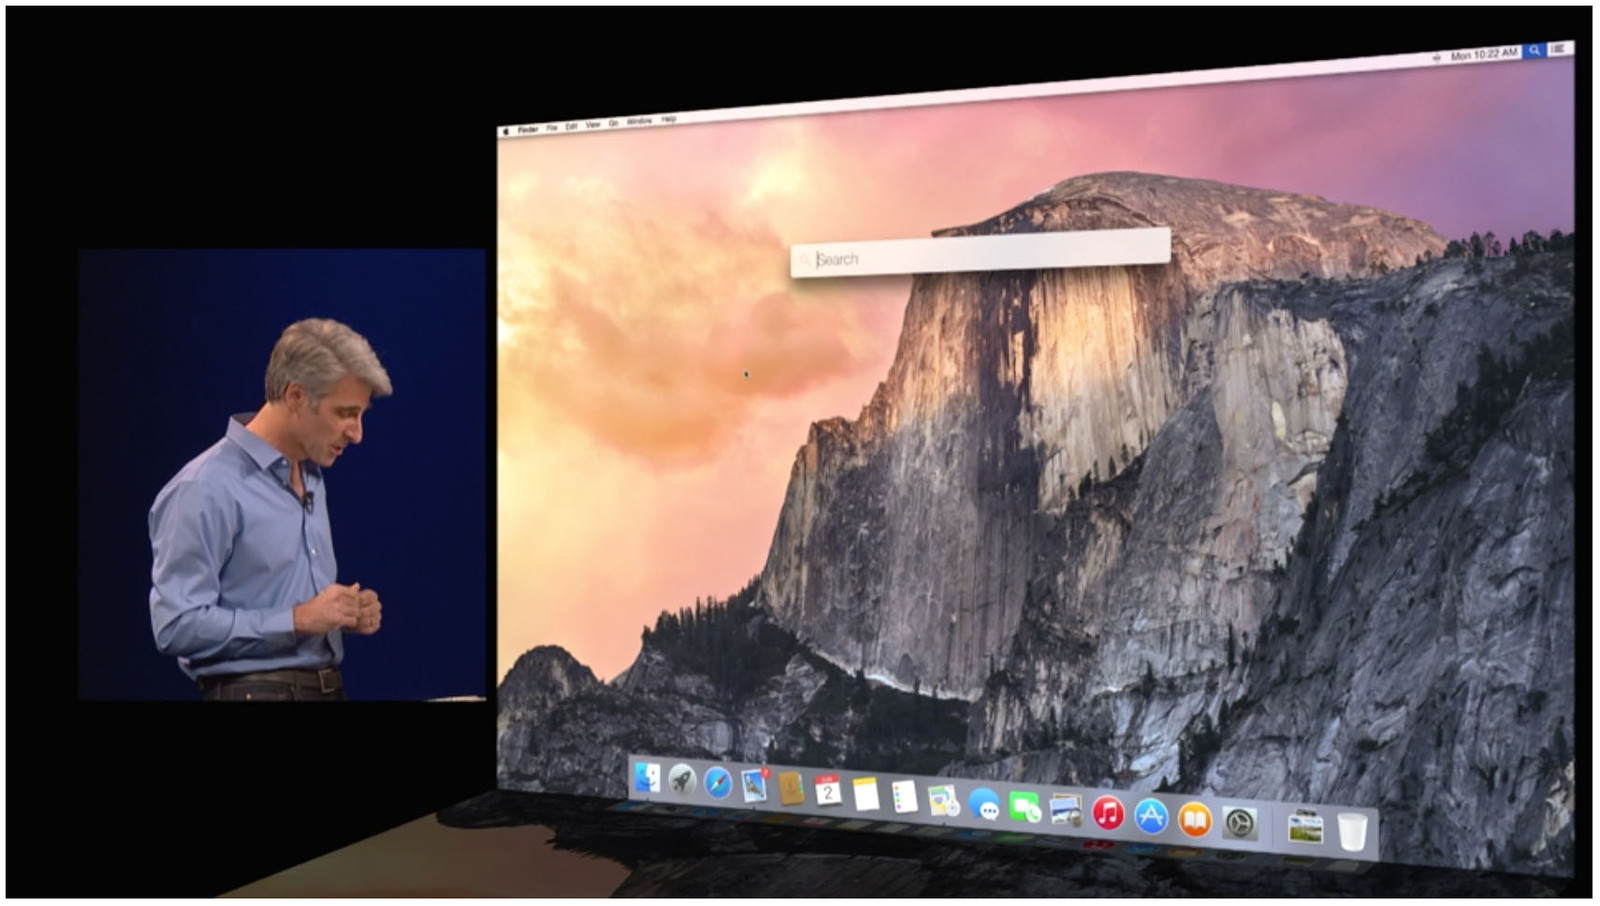 OS X Yosemite: Spotlight Explained